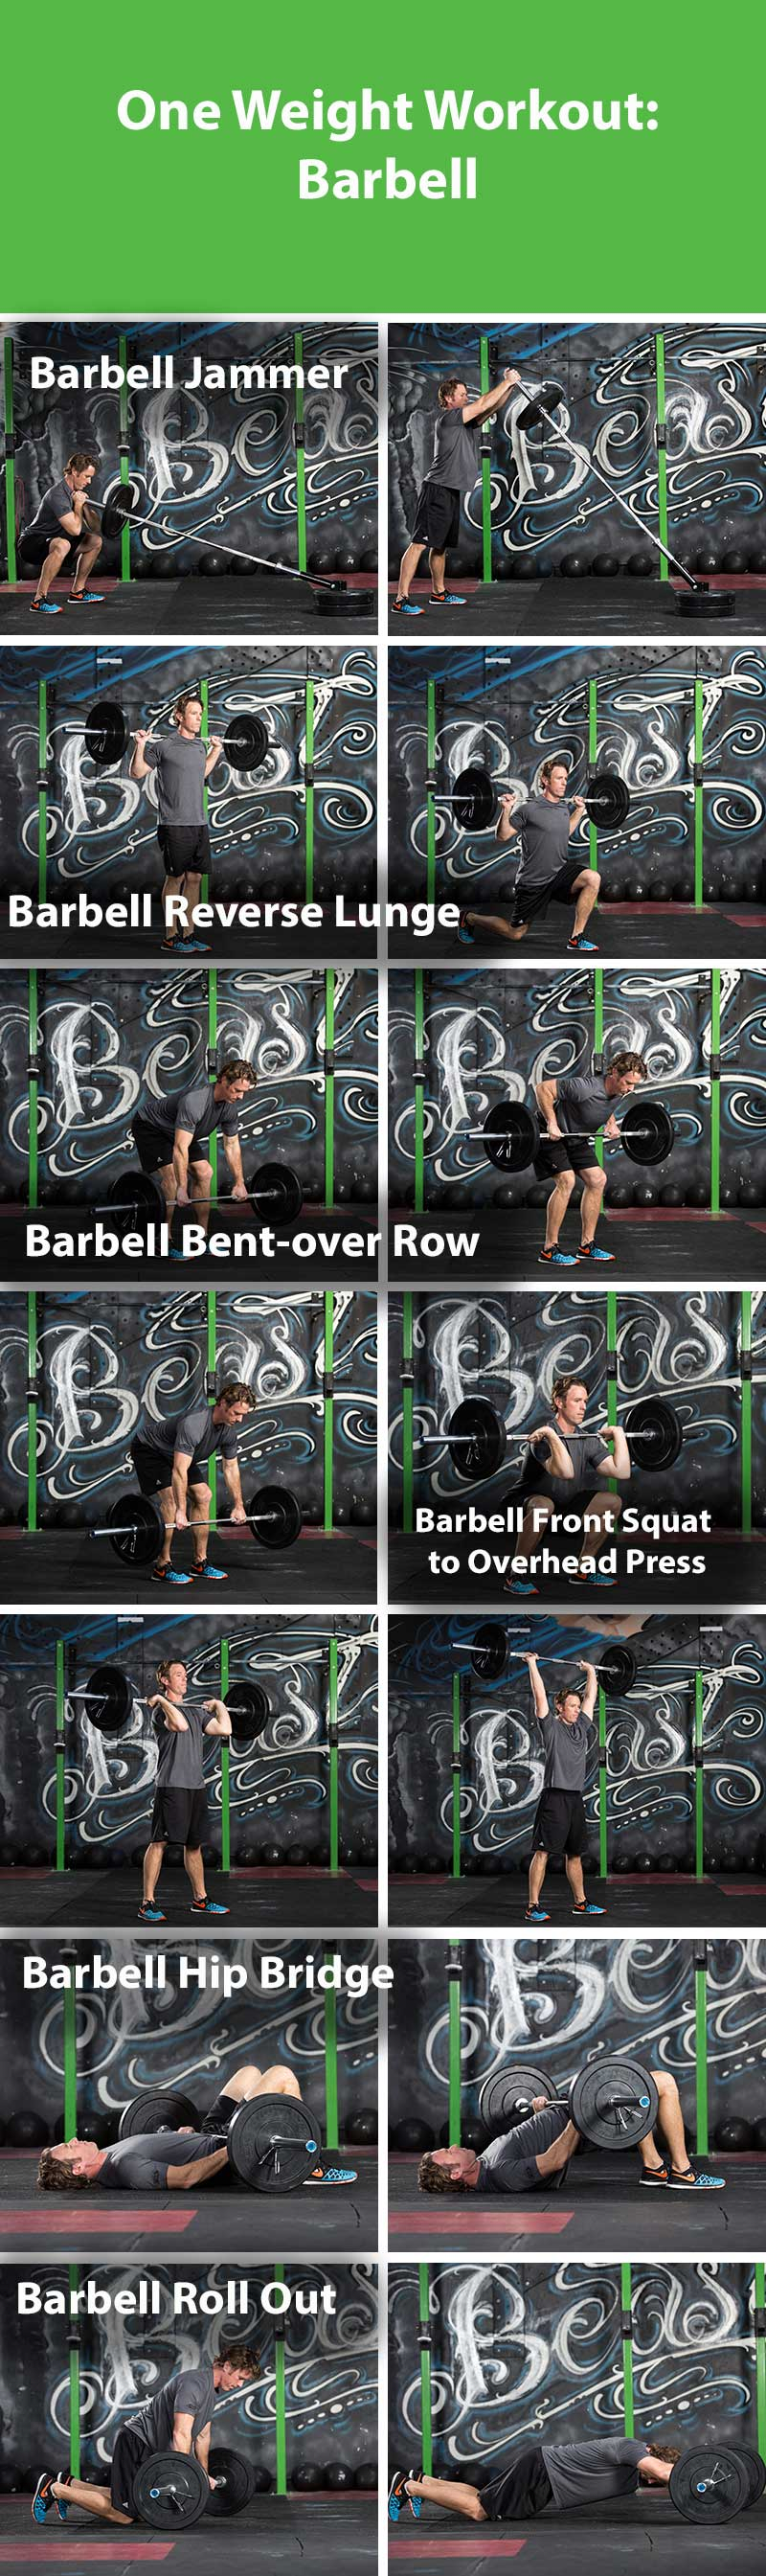 One weight workout- barbell